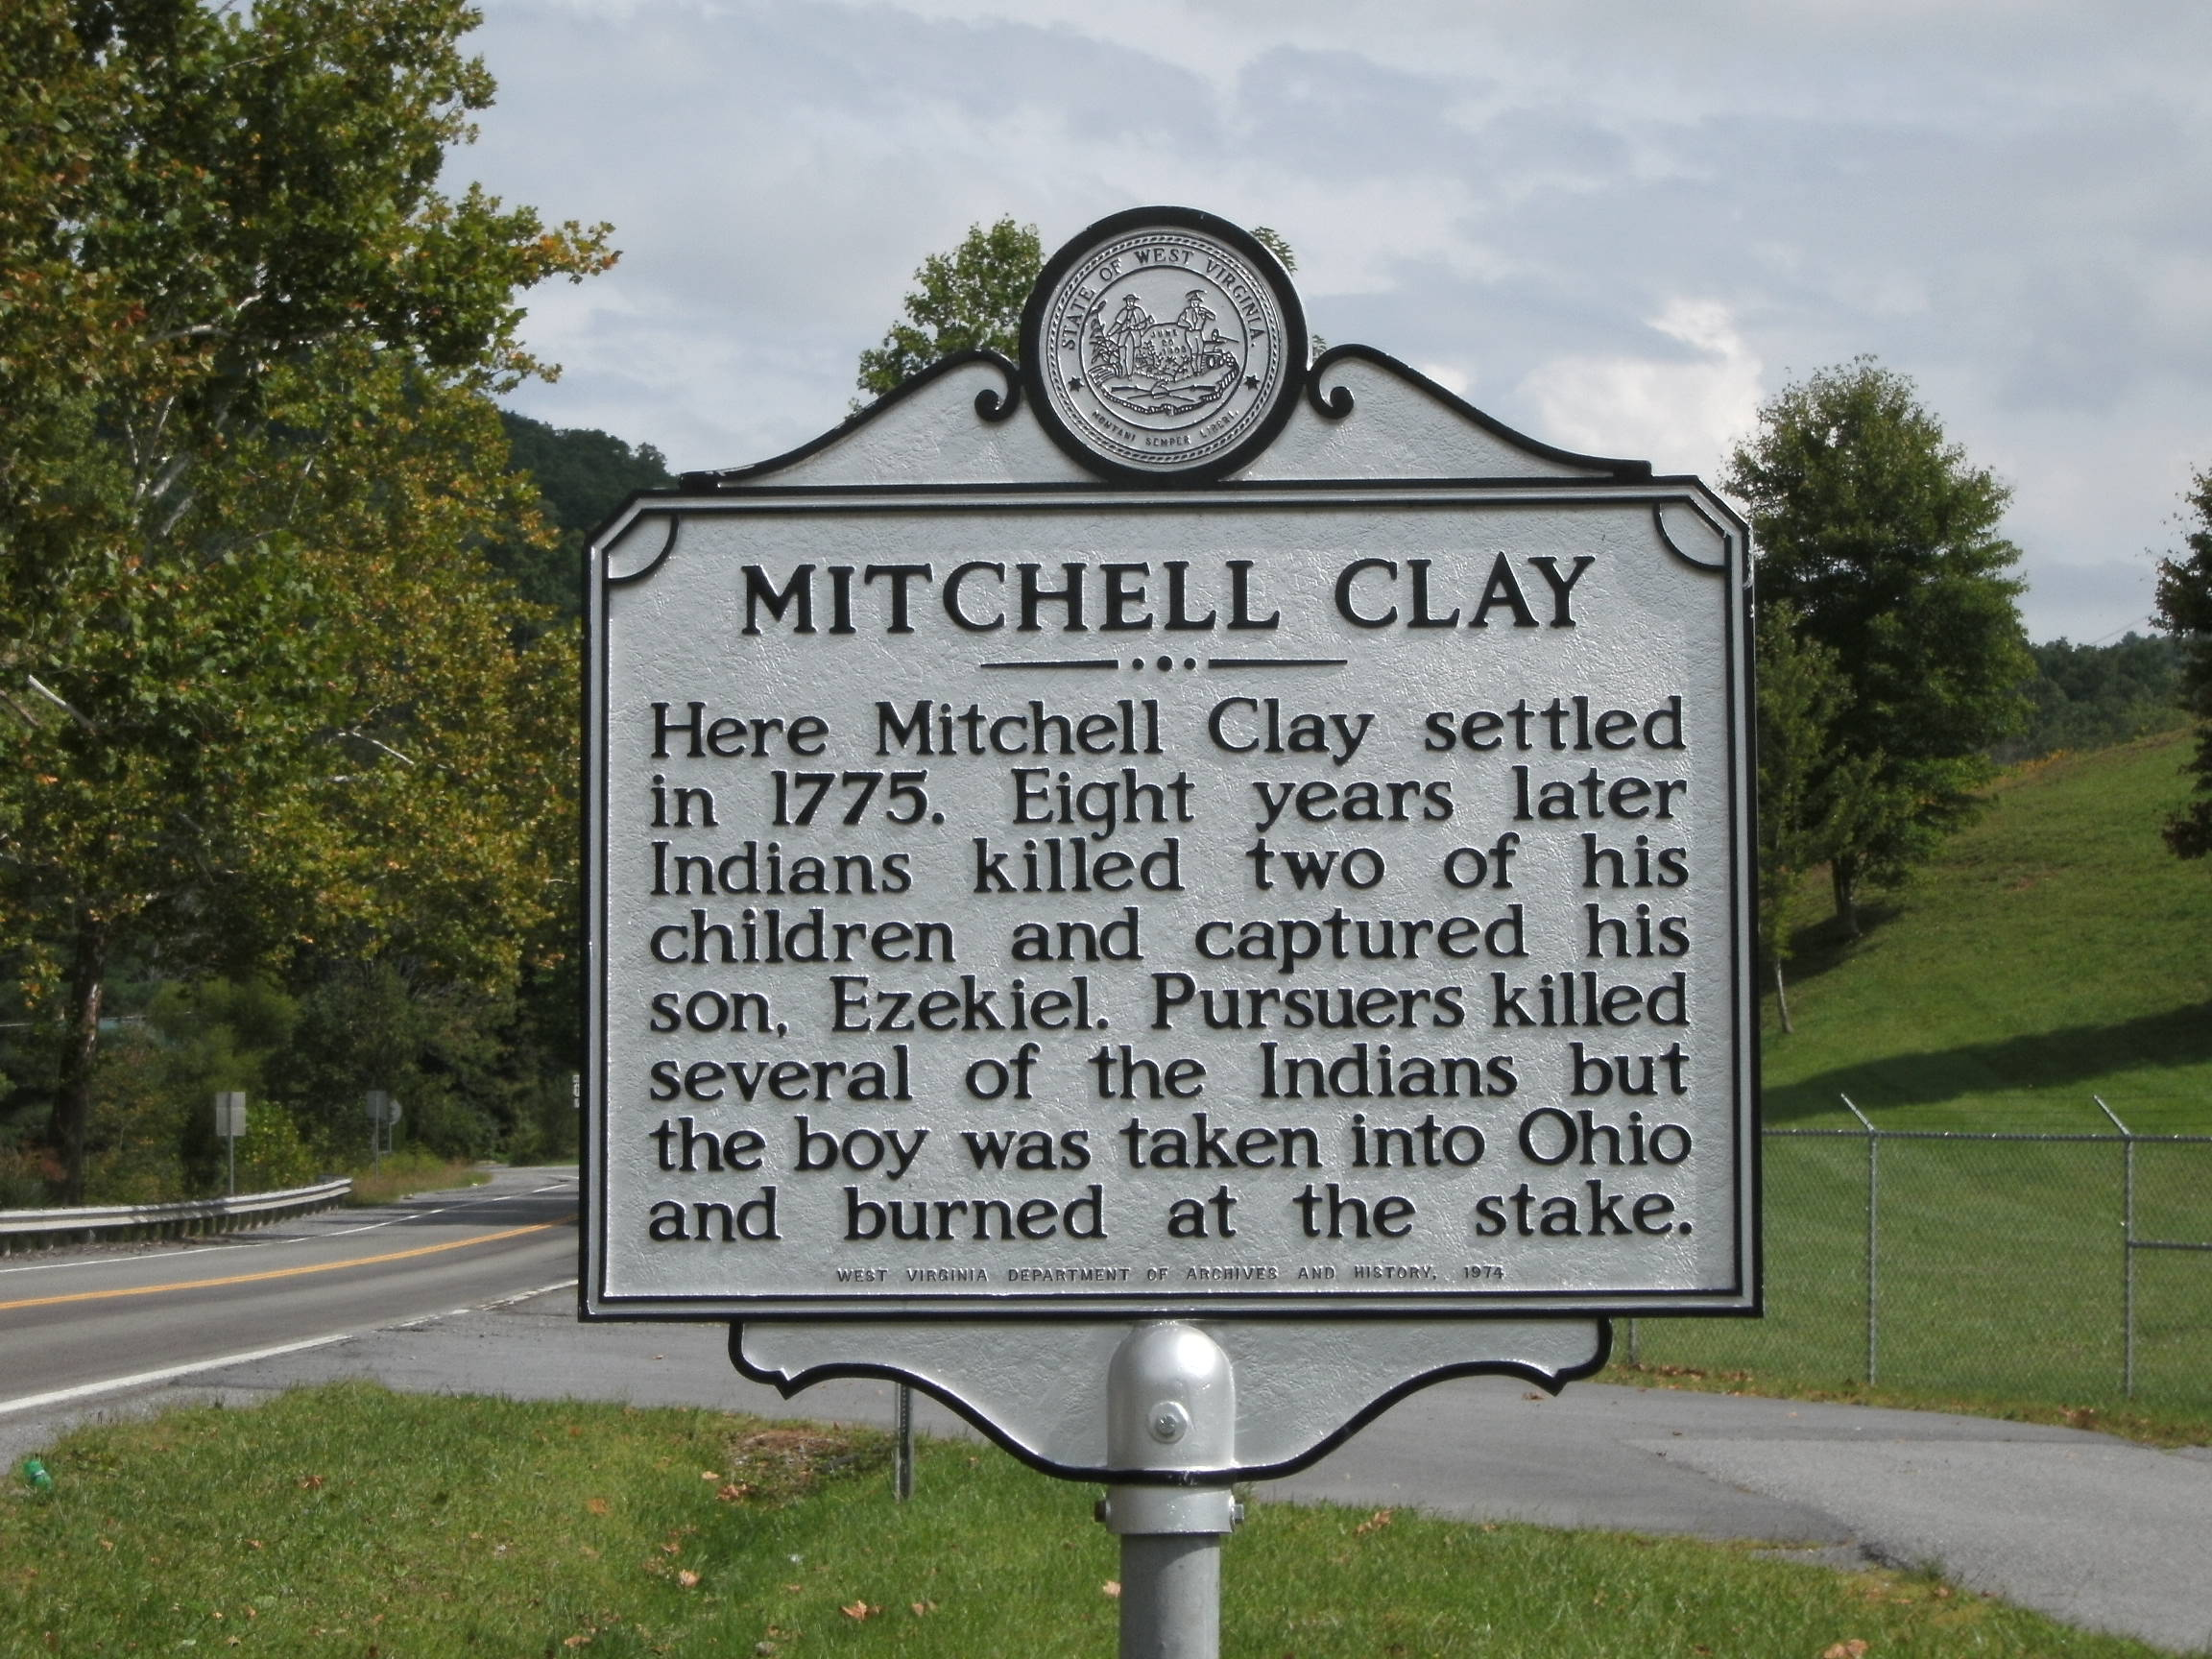 Historical Marker located on Rt. 10.  (photo by Steven Hart)